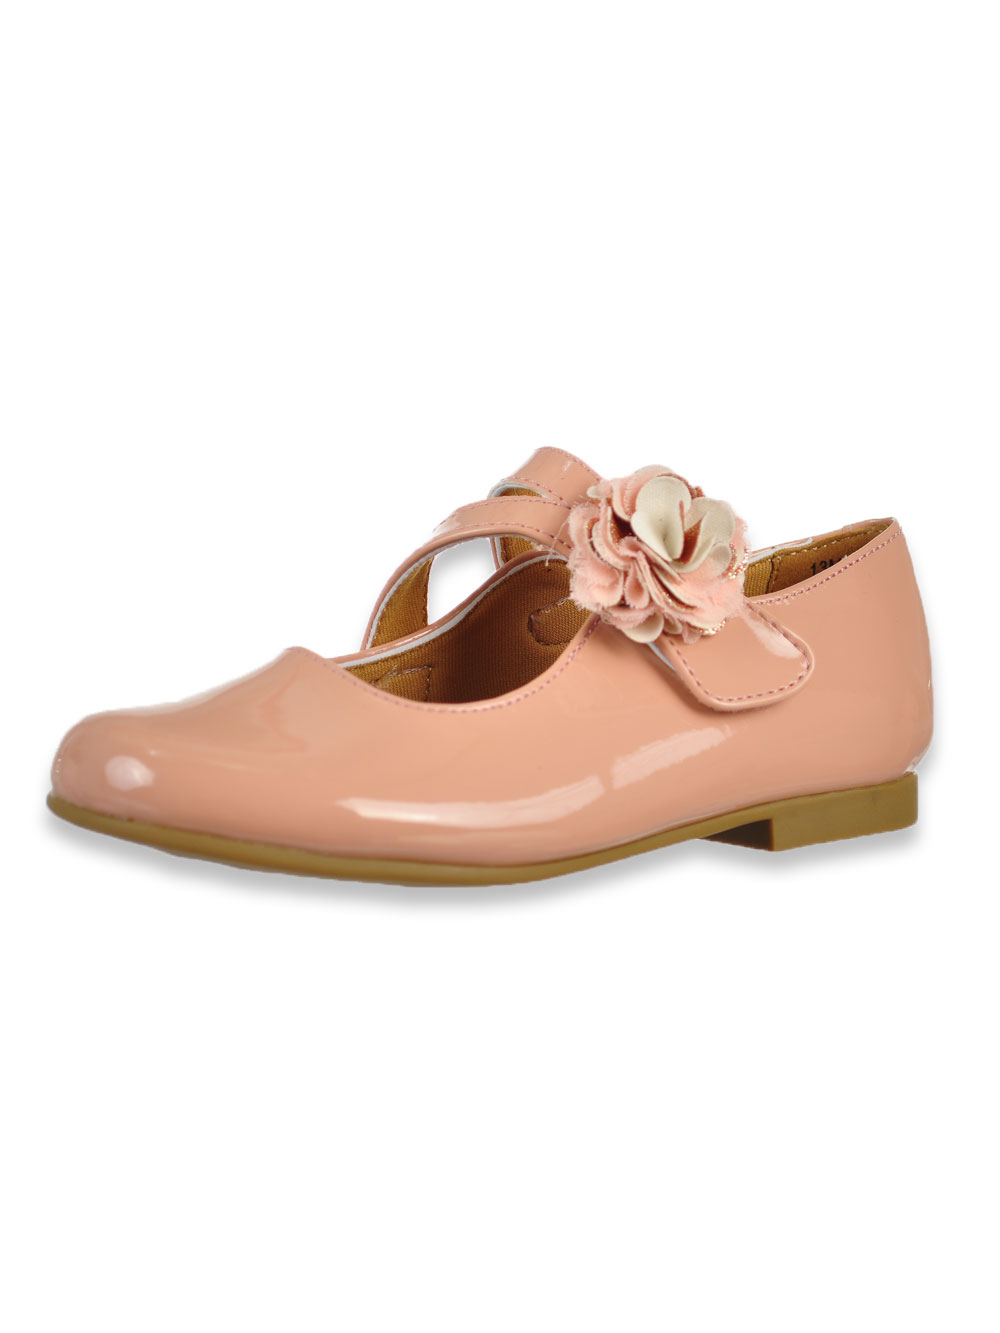 Blush Dress Shoes